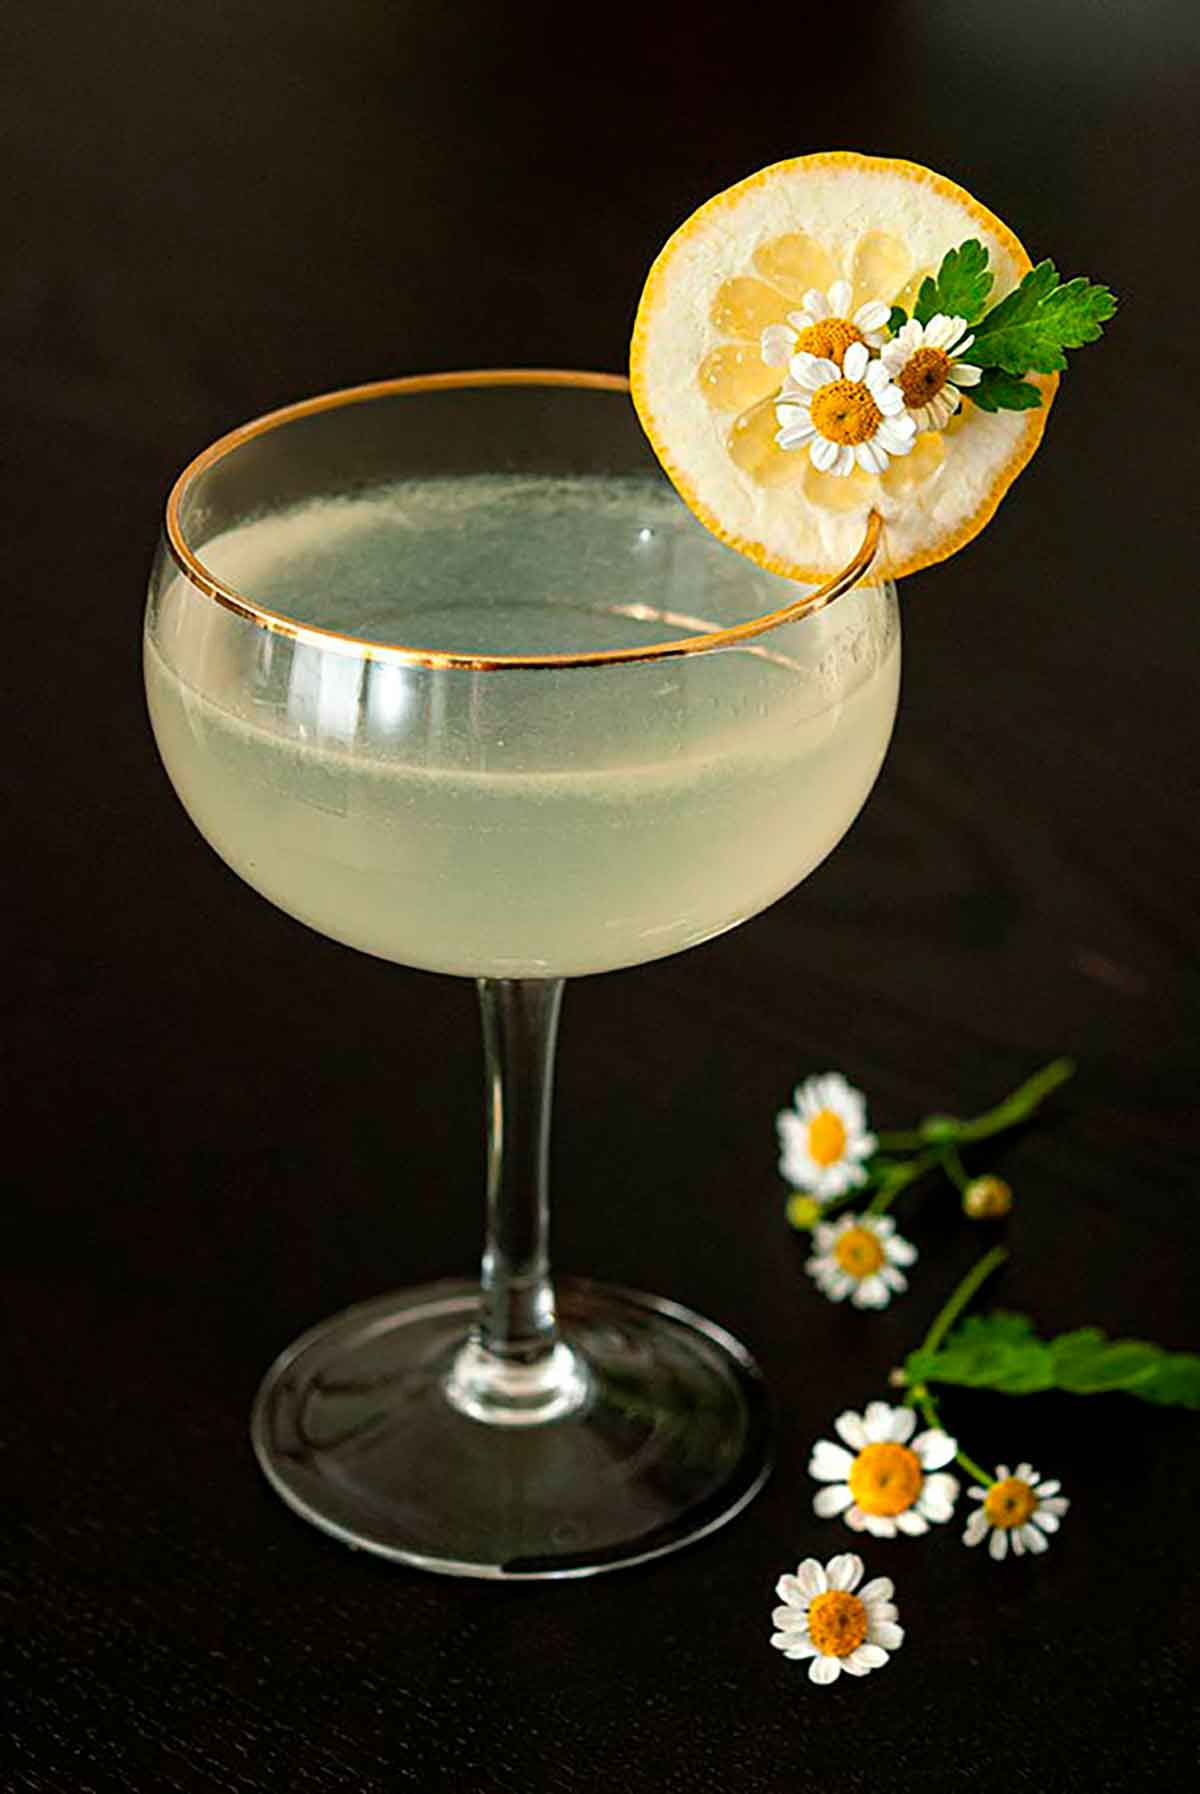 A Lemon Drop cocktail, garnished with a lemon slice and 3 small daisies on a table, with a bouquet in the background.